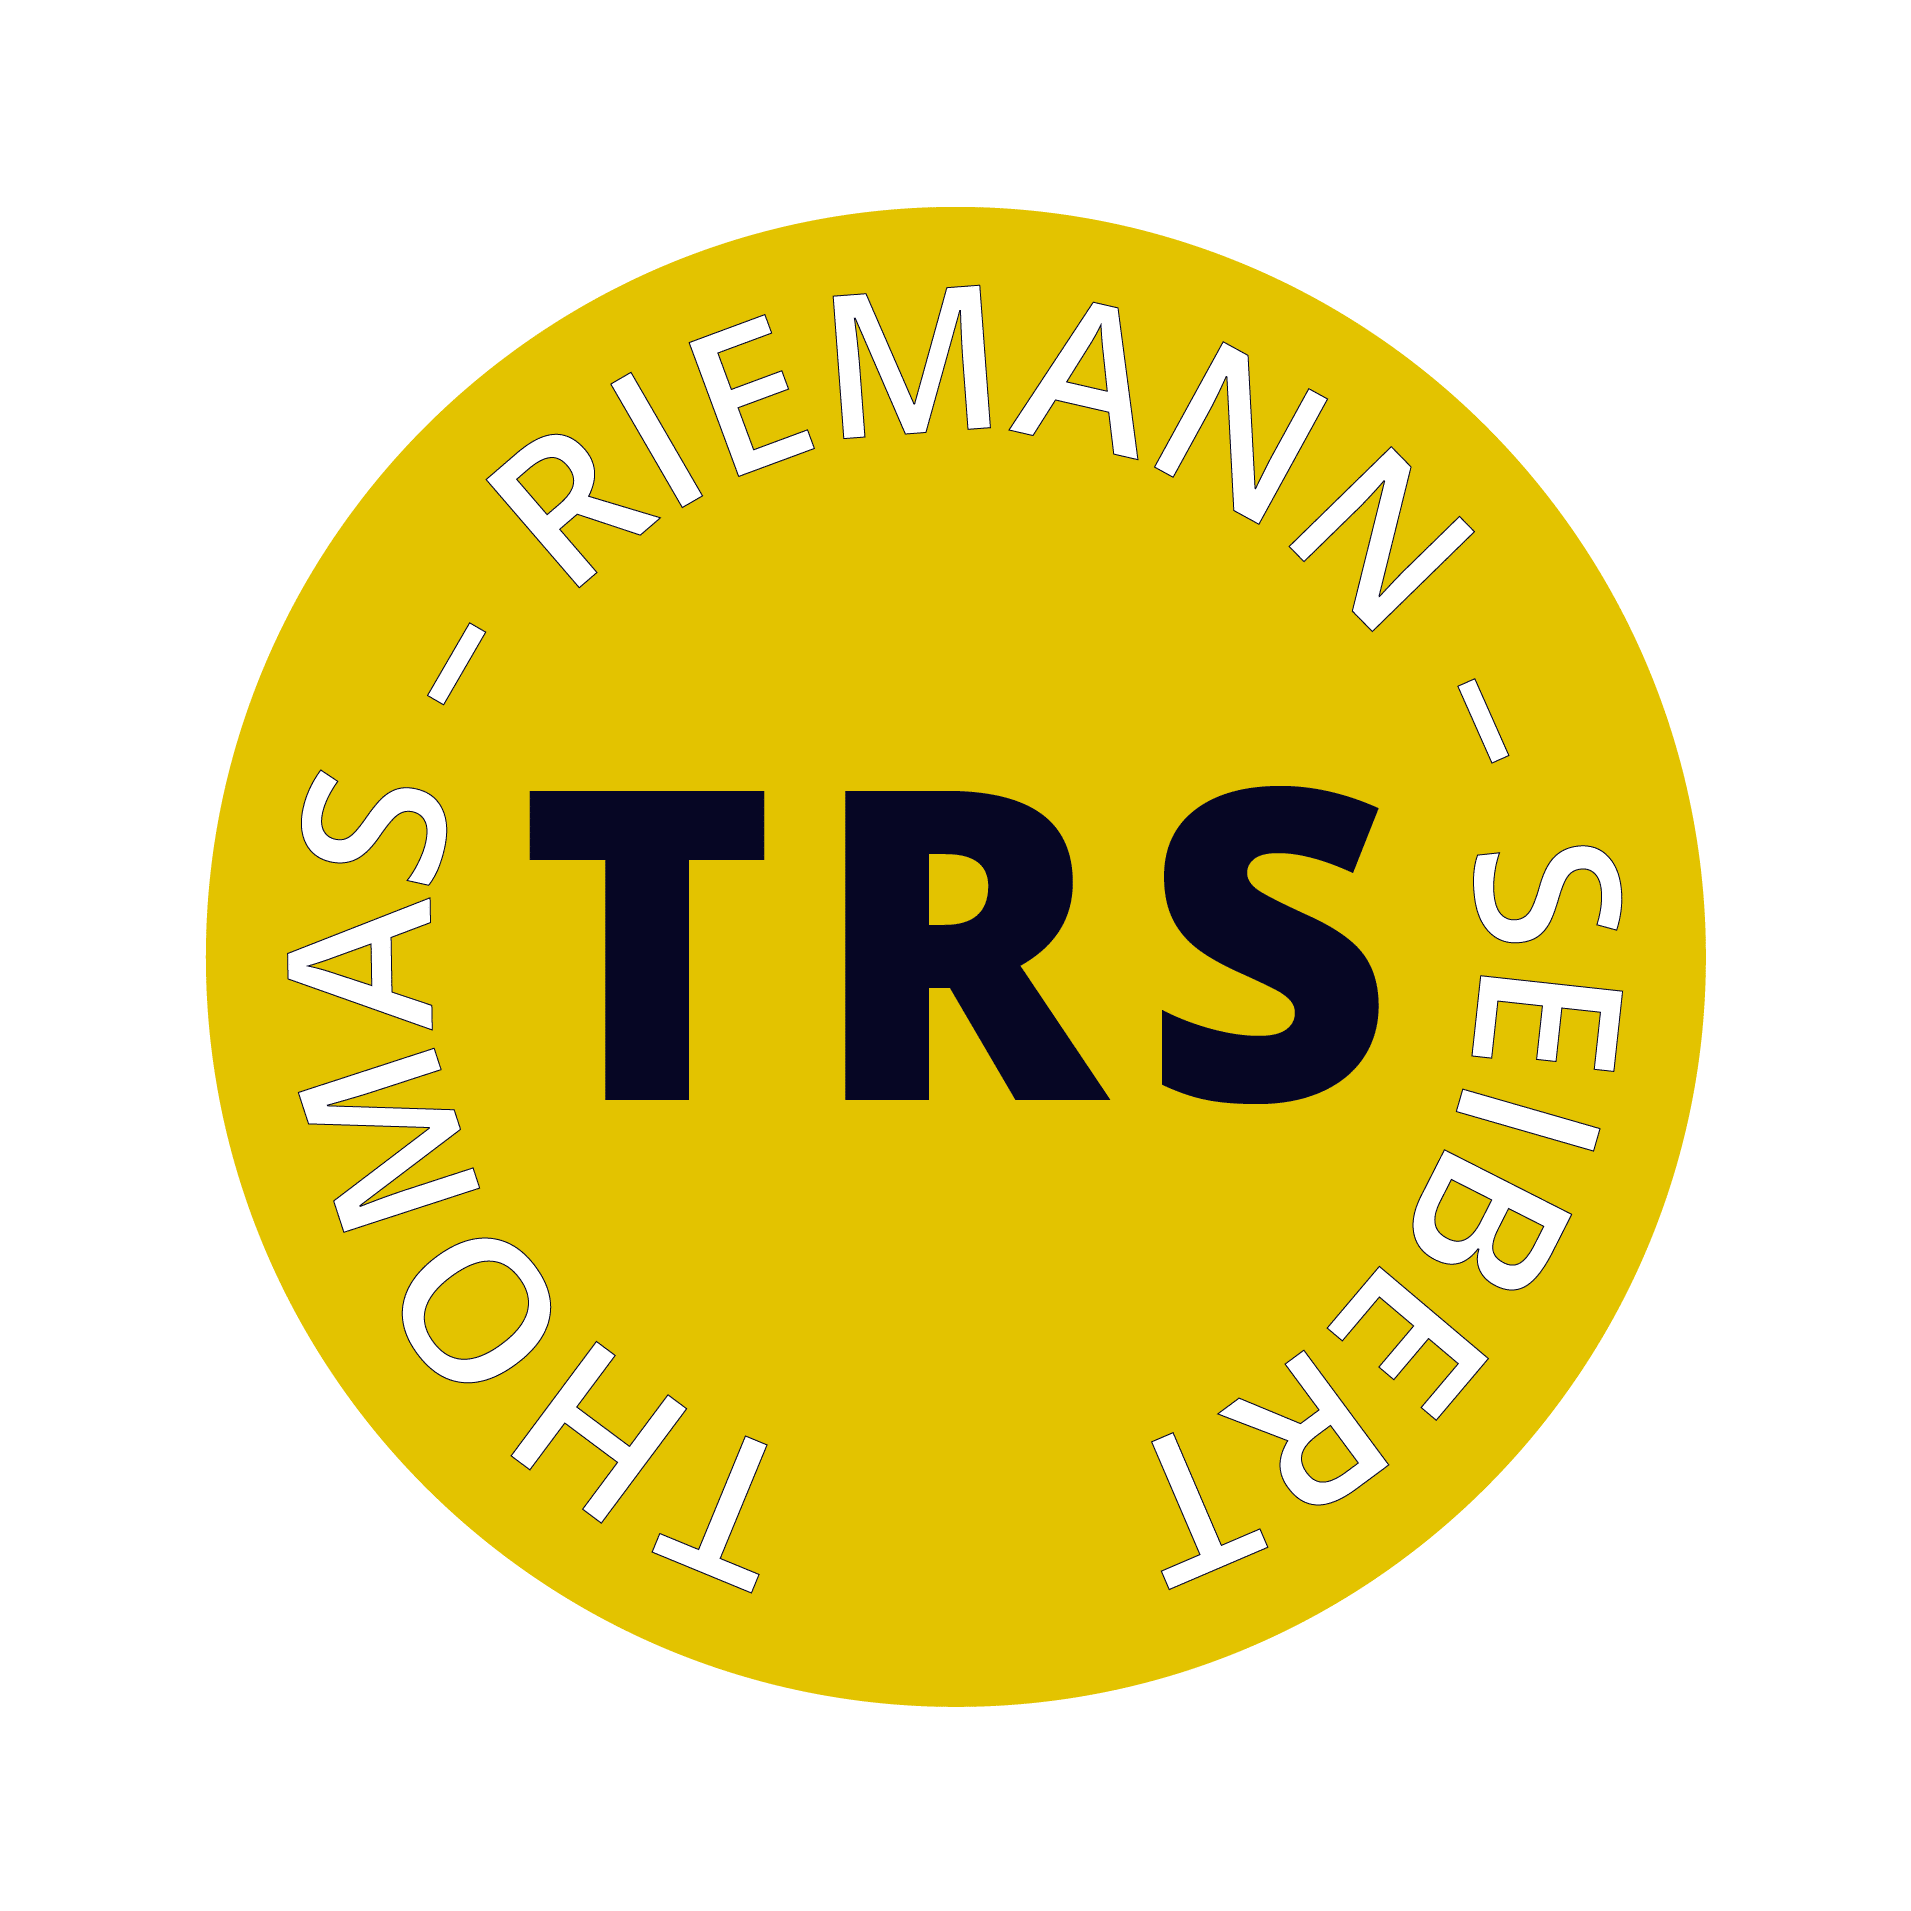 Thomas.Riemann.Seibert